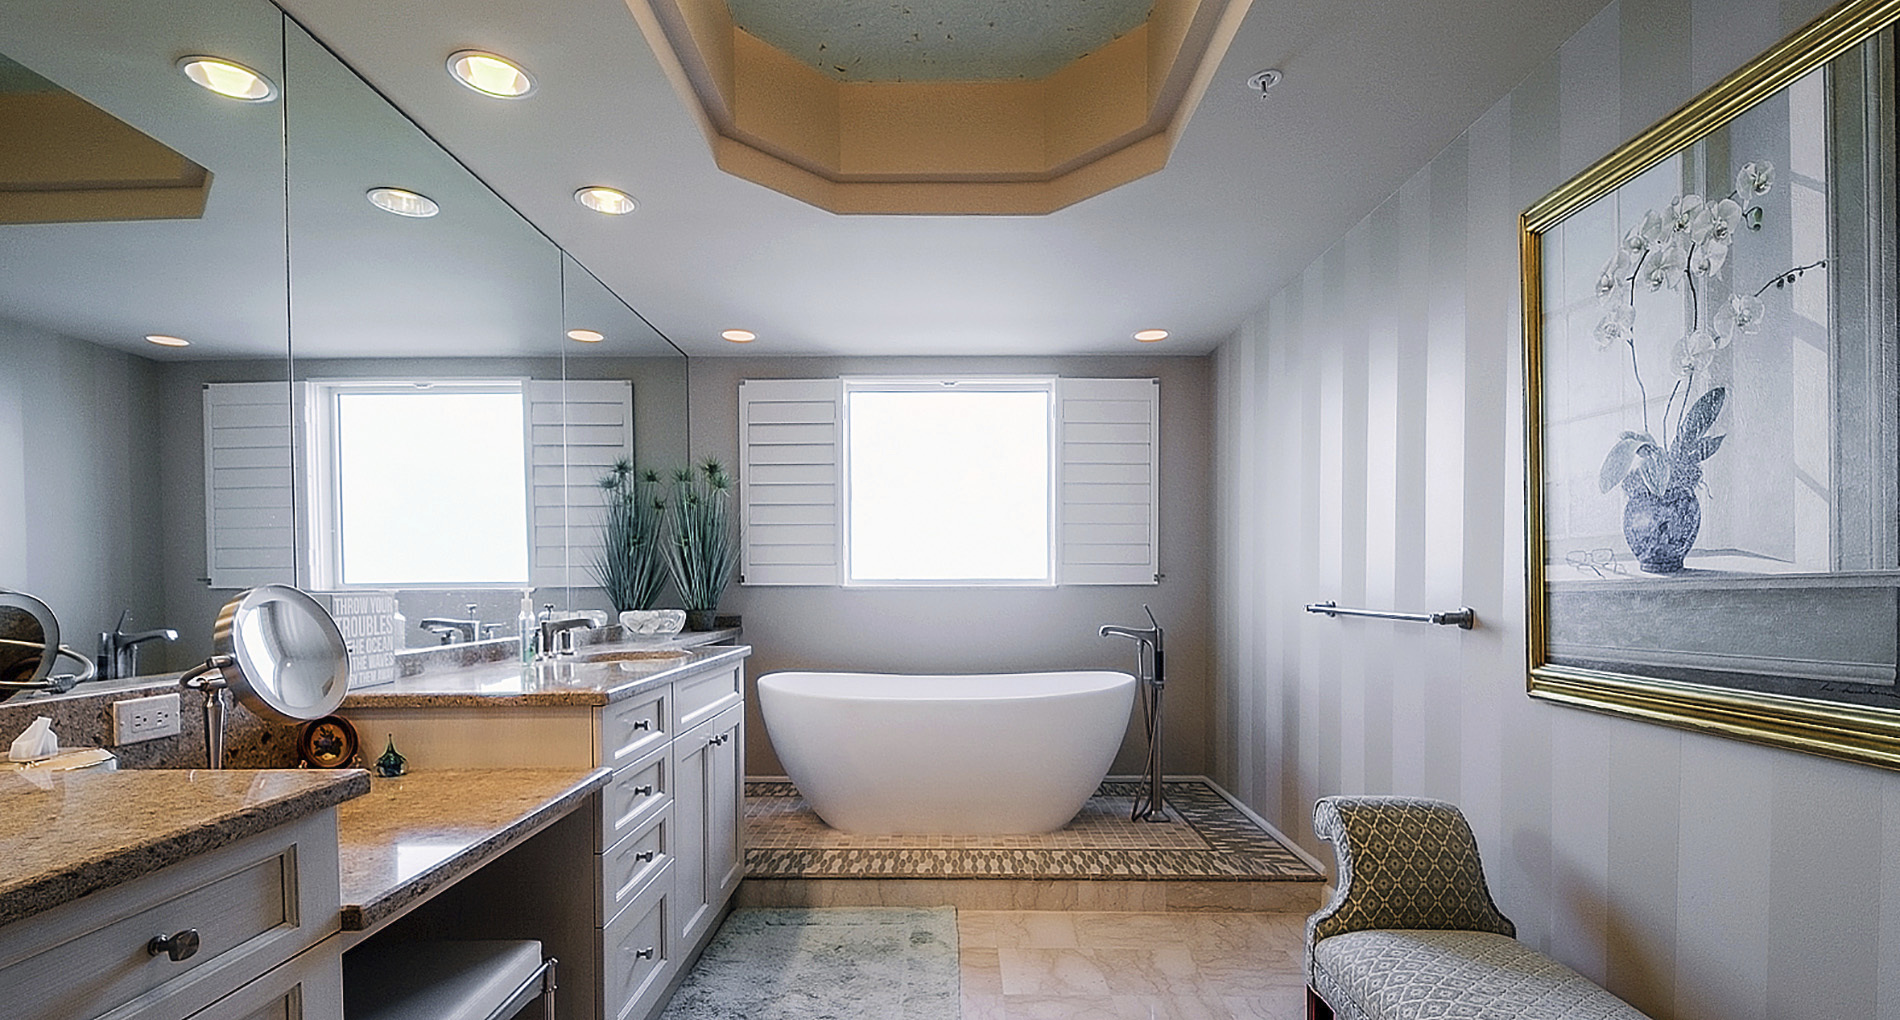 spa style custom all white bathrooms with oak ceiling inset and destination tub